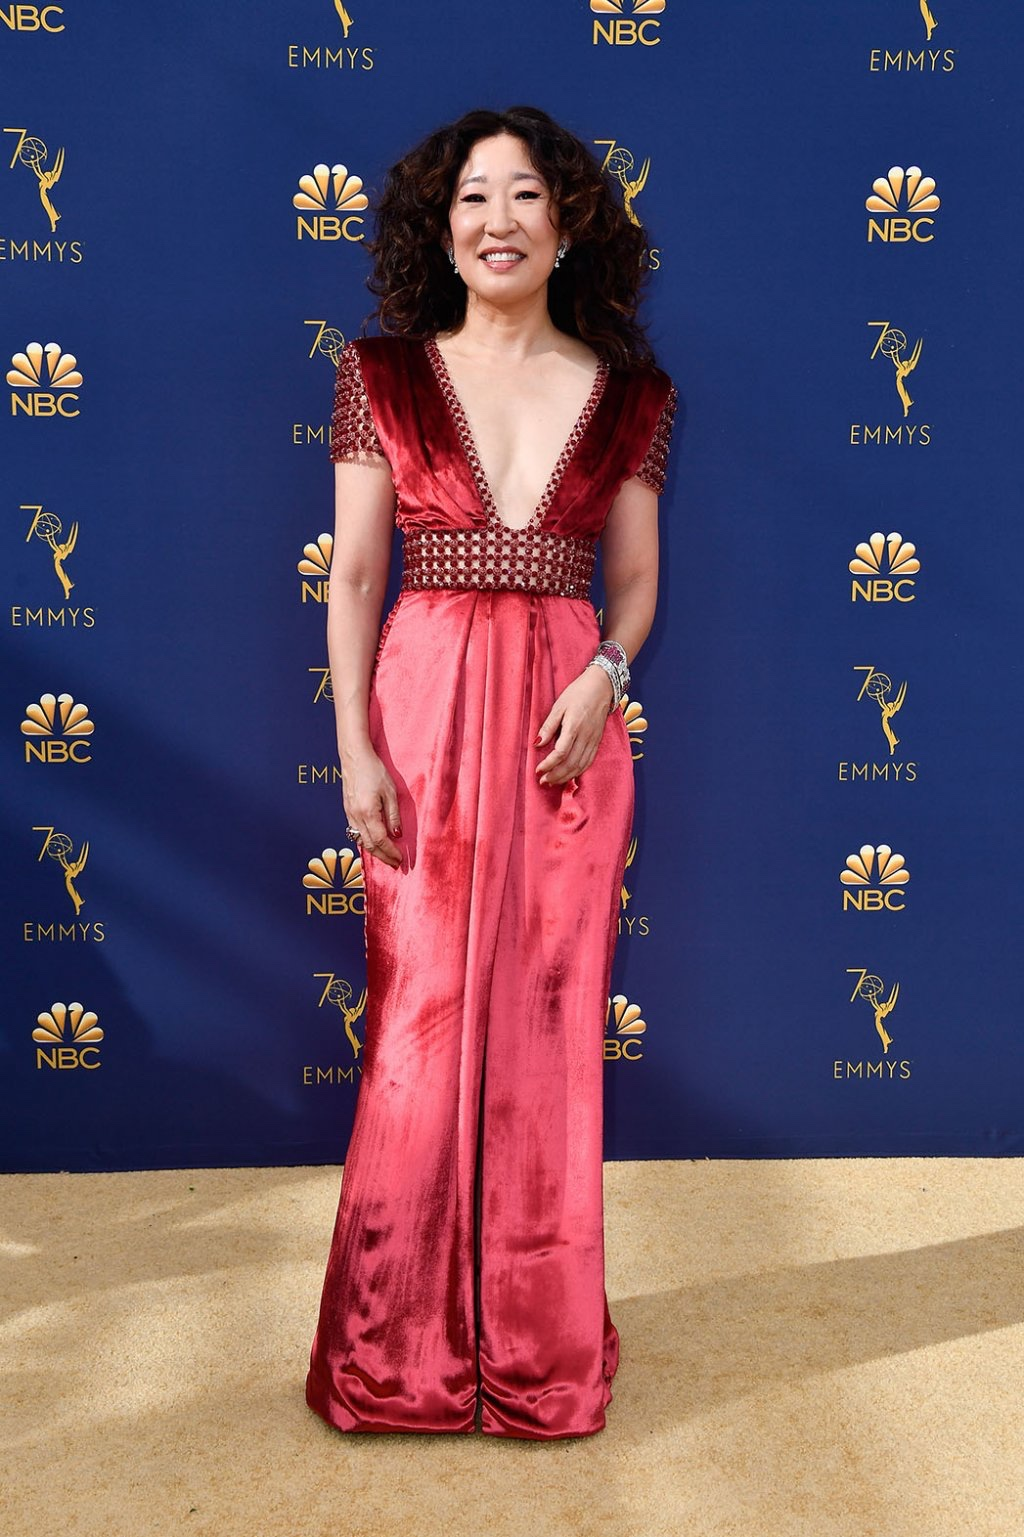 Sandra Oh in Ralph And Russo Couture, 70th Annual Primetime Emmy Awards, Betty White, Emmys 2018, Fashion, Featured, Glenn Weiss, Hannah Gadsby, highlights, Jav Svendsen, Online Exclusive, Style, The Marvellous Mrs. Maisel, top moments, We solved it, Diversity